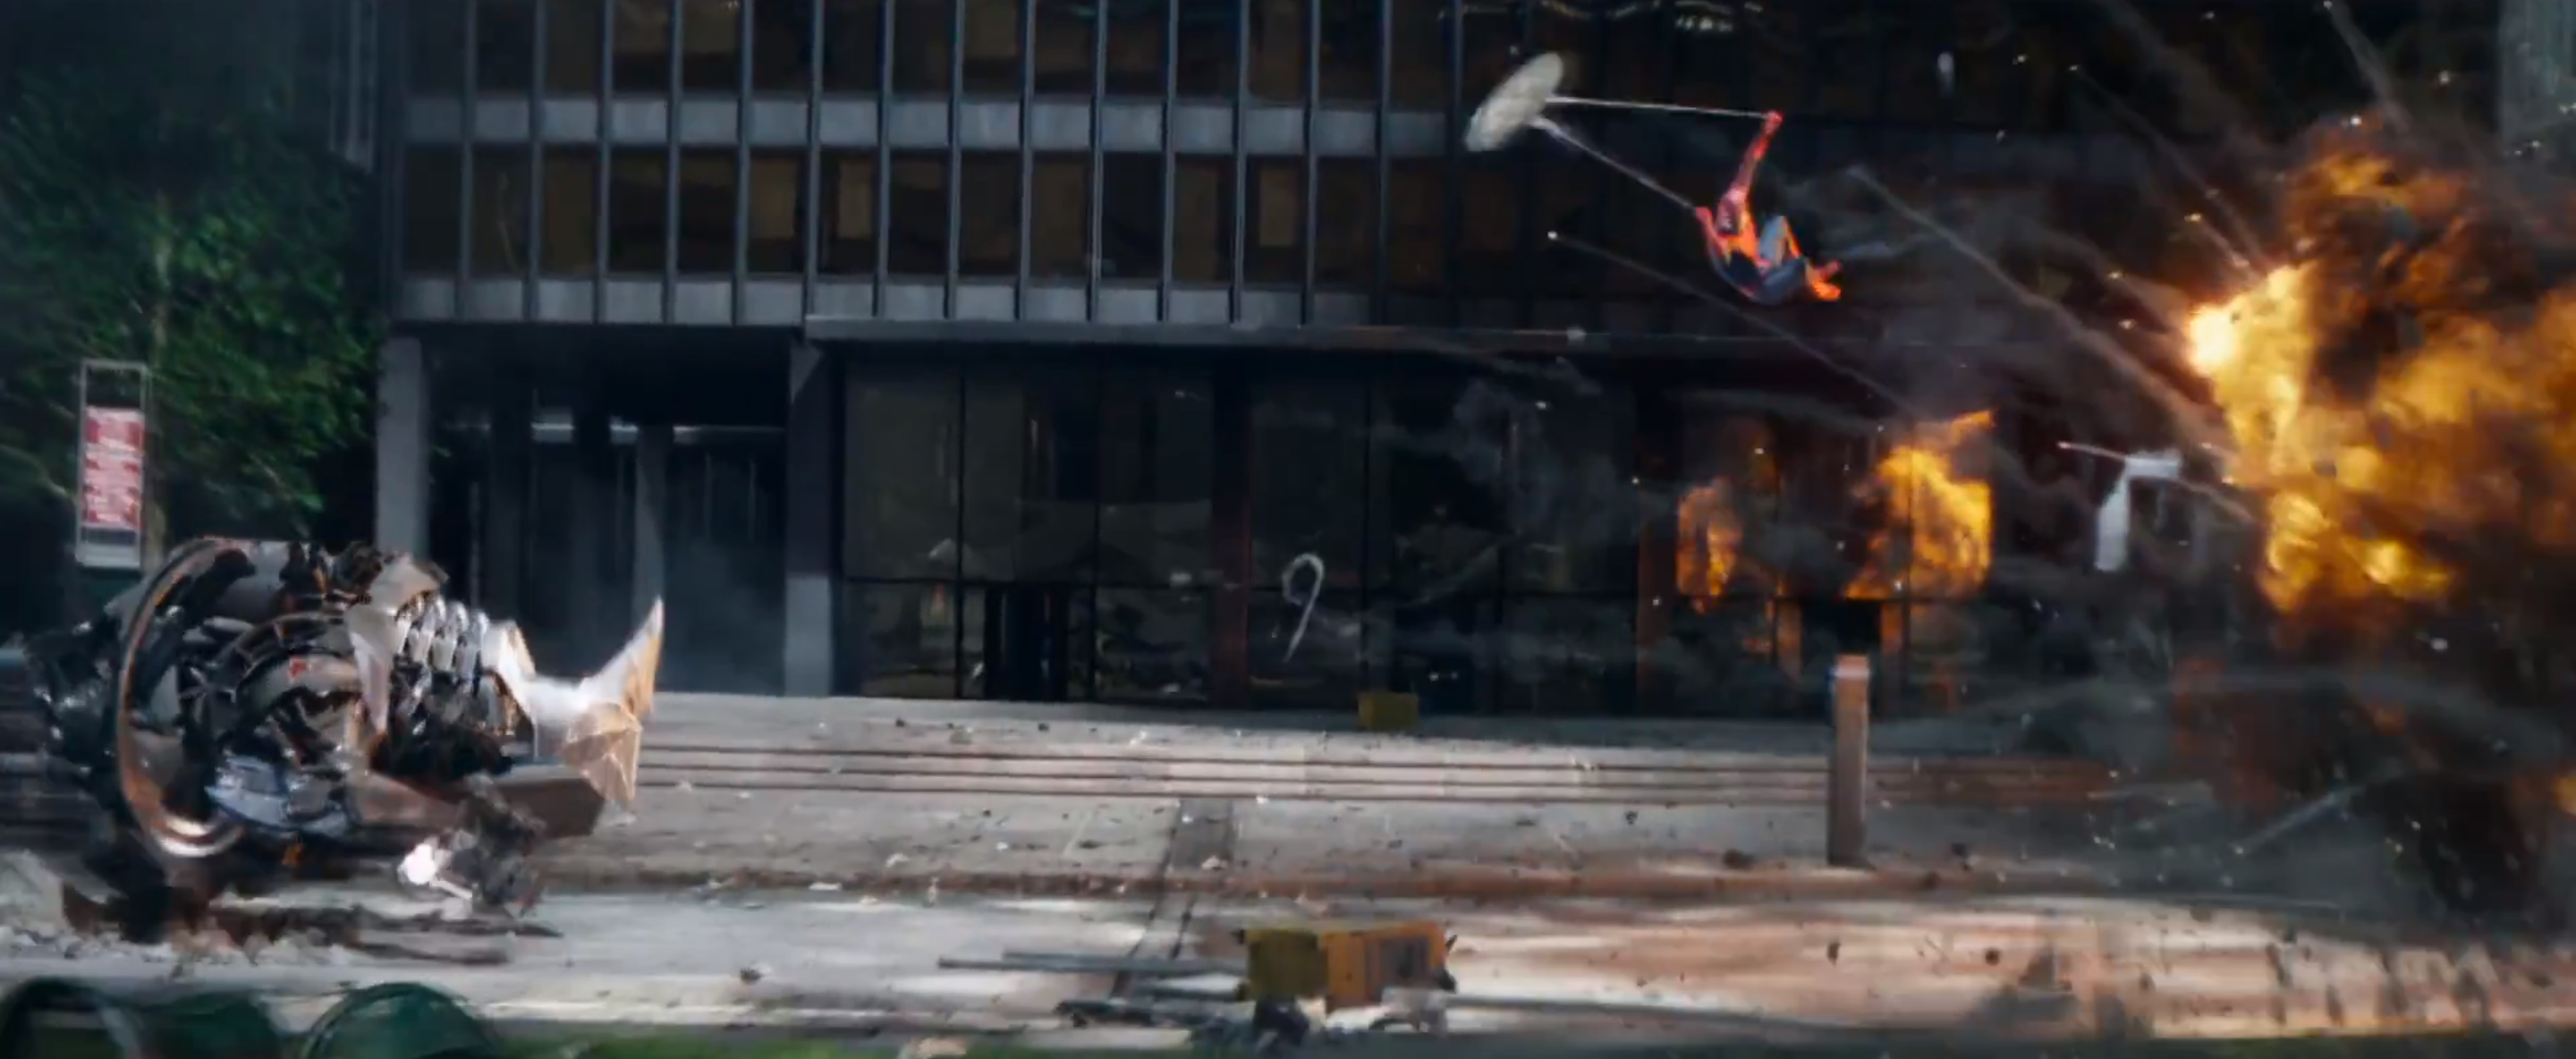 The Amazing Spiderman 2 Final Trailer – Sinister ...